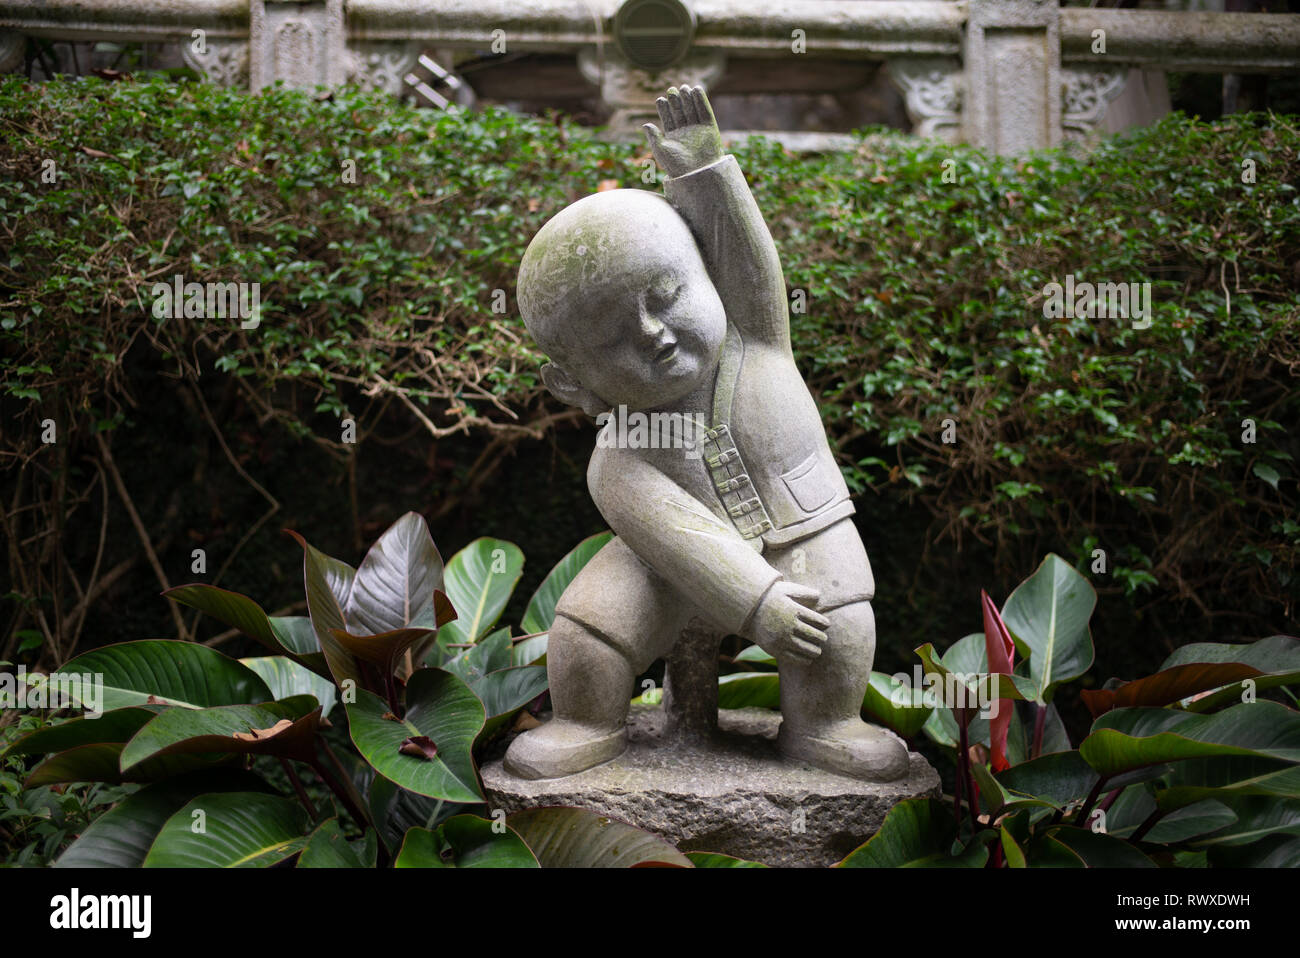 Fo Guang Shan - Largest Buddhist Monastery in Taiwan-A cute small stone buddha statue in the gardens of the temple in exercise pose. Kaohsiung, 2018 - Stock Image